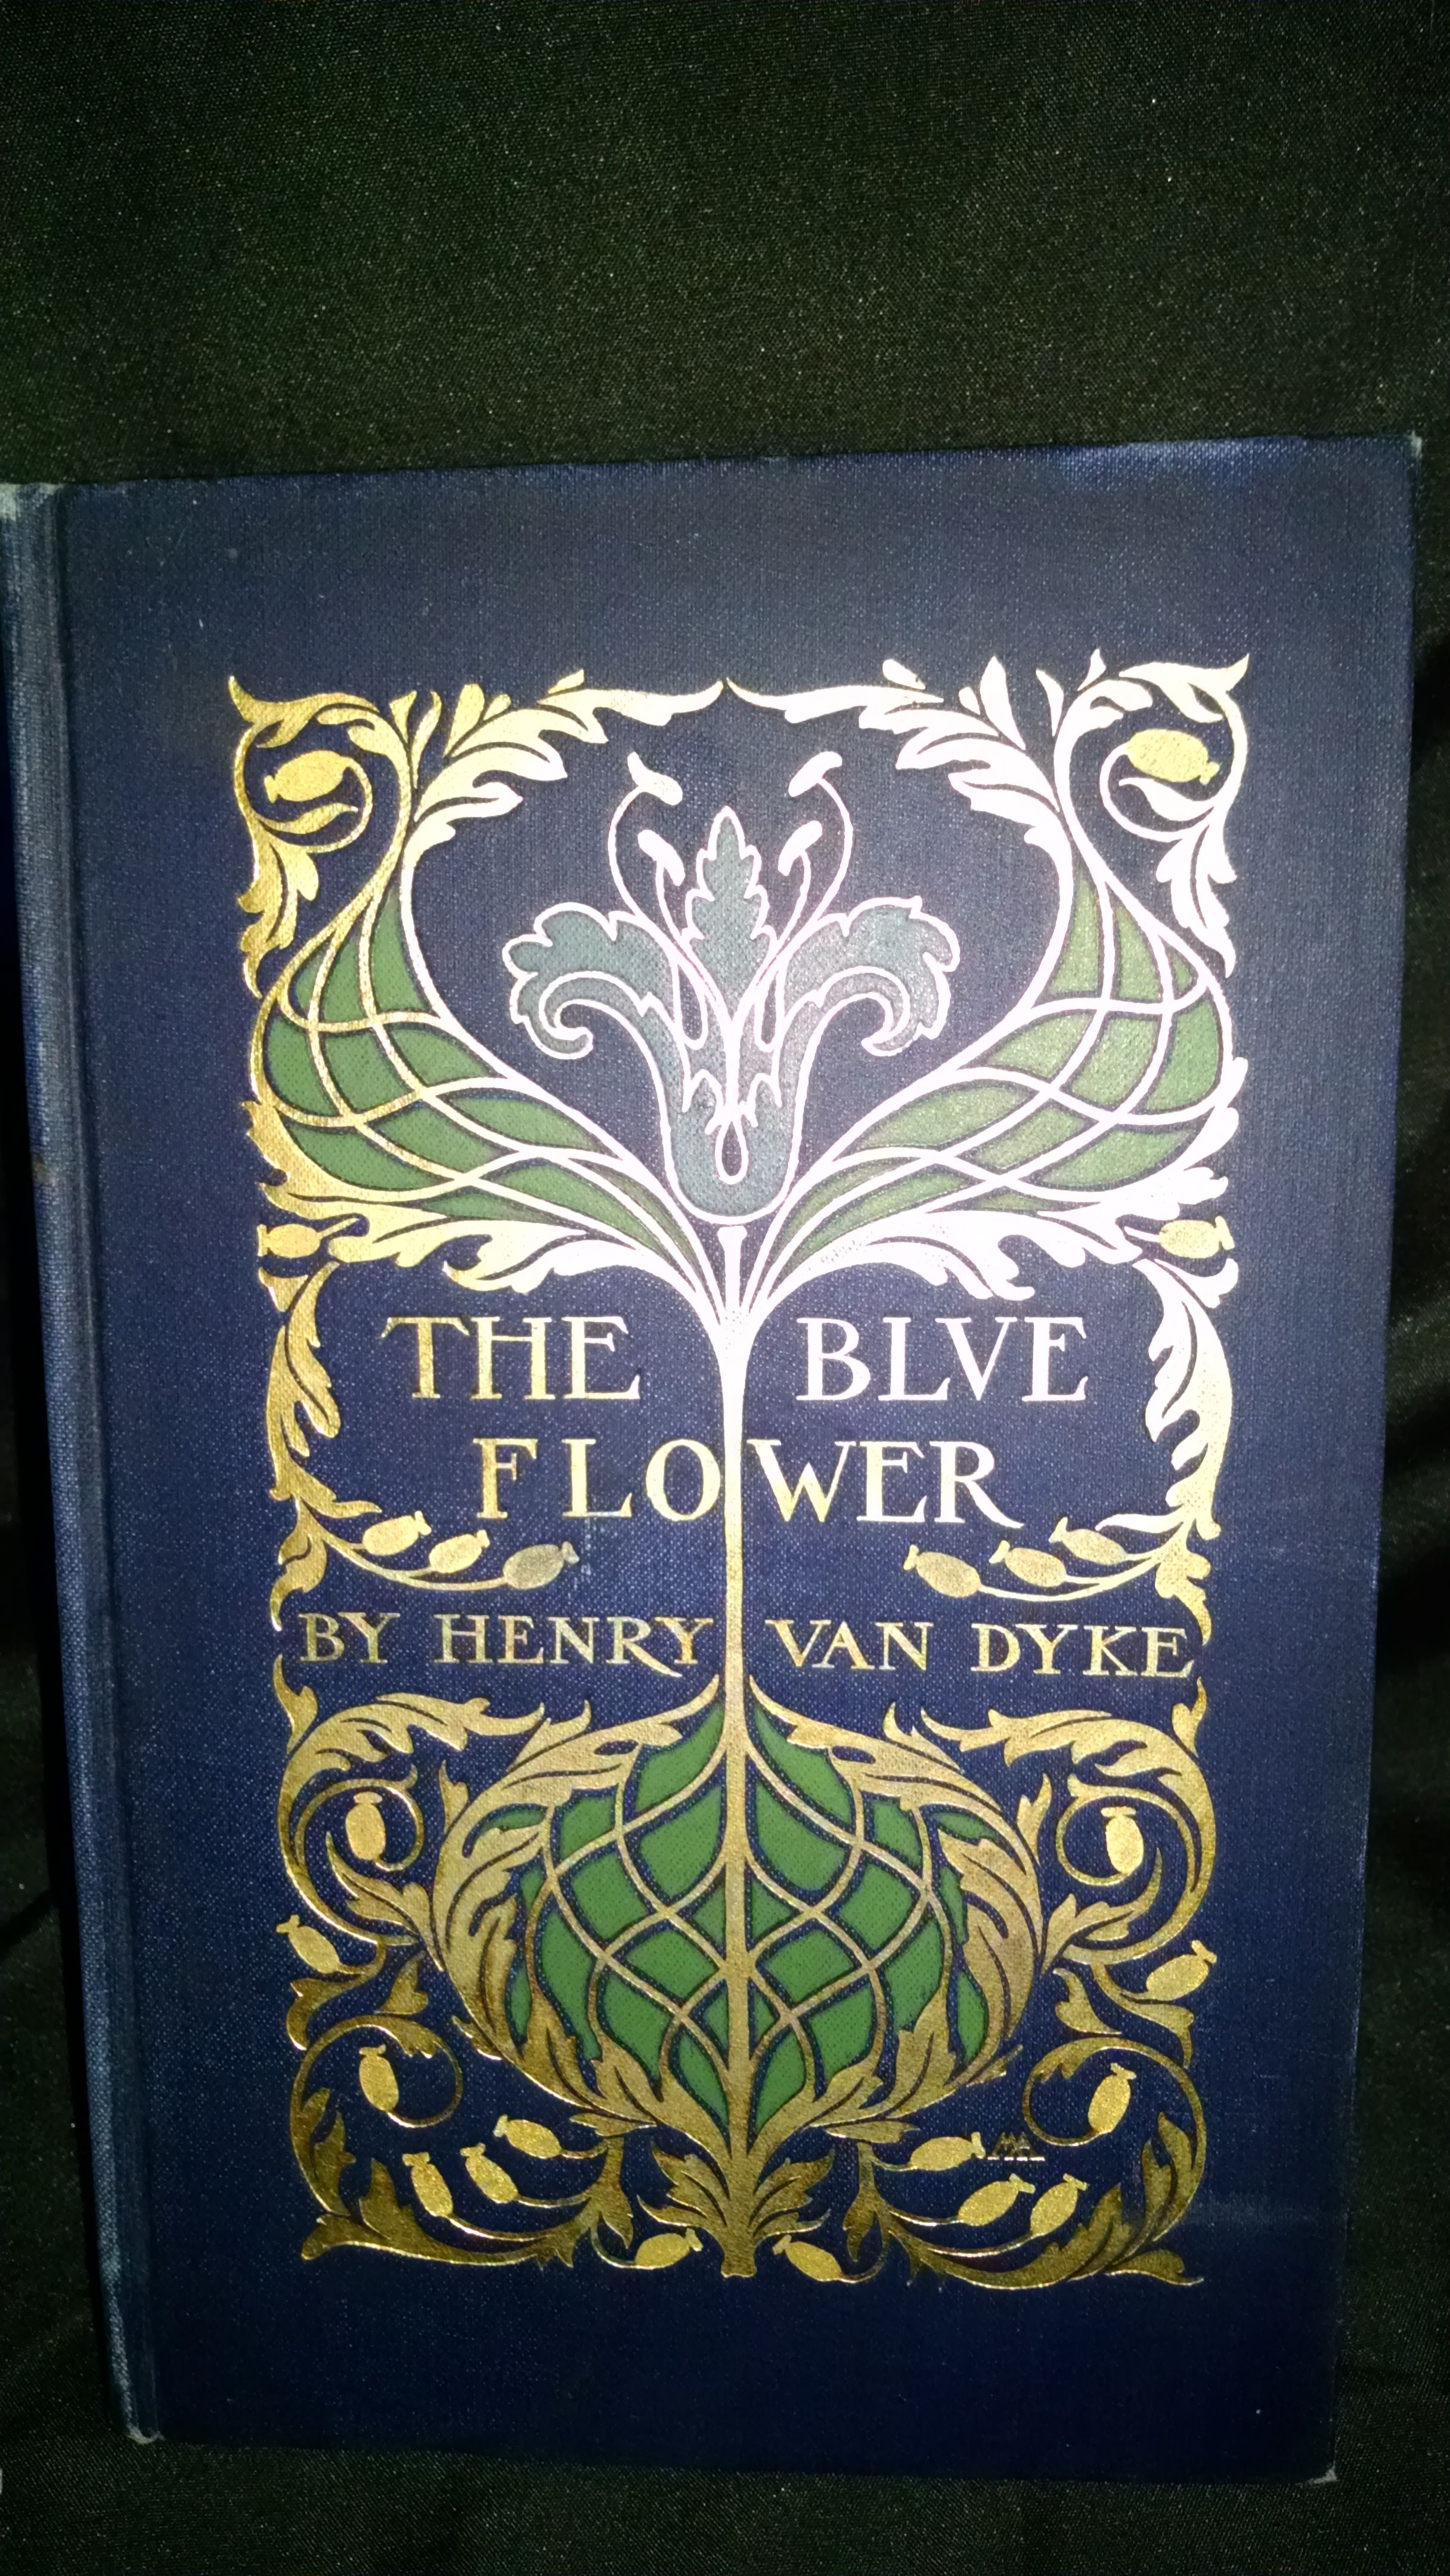 The blue flower by henry van dyke hardcover signed 1902 from the blue flower by henry van dyke new york charles scribners sons 1902 an izmirmasajfo